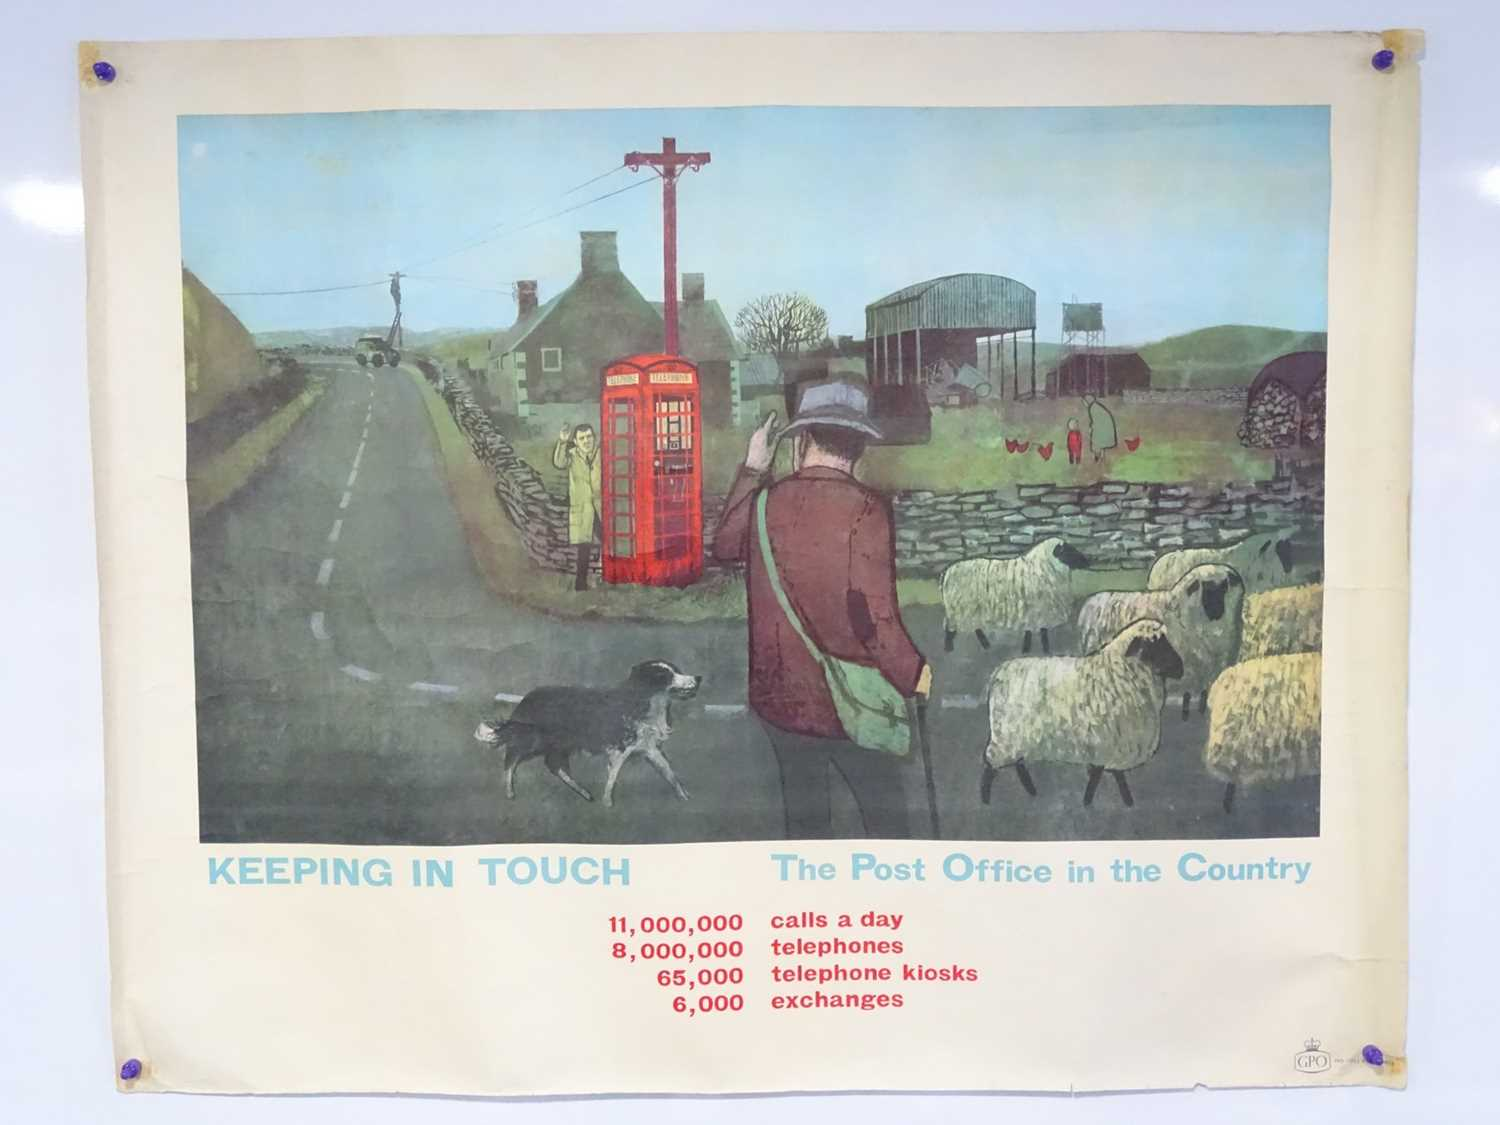 GPO (Post Office) circa 1962 - 'Keeping in Touch' - 'The Post Office in the Country' - Landscape